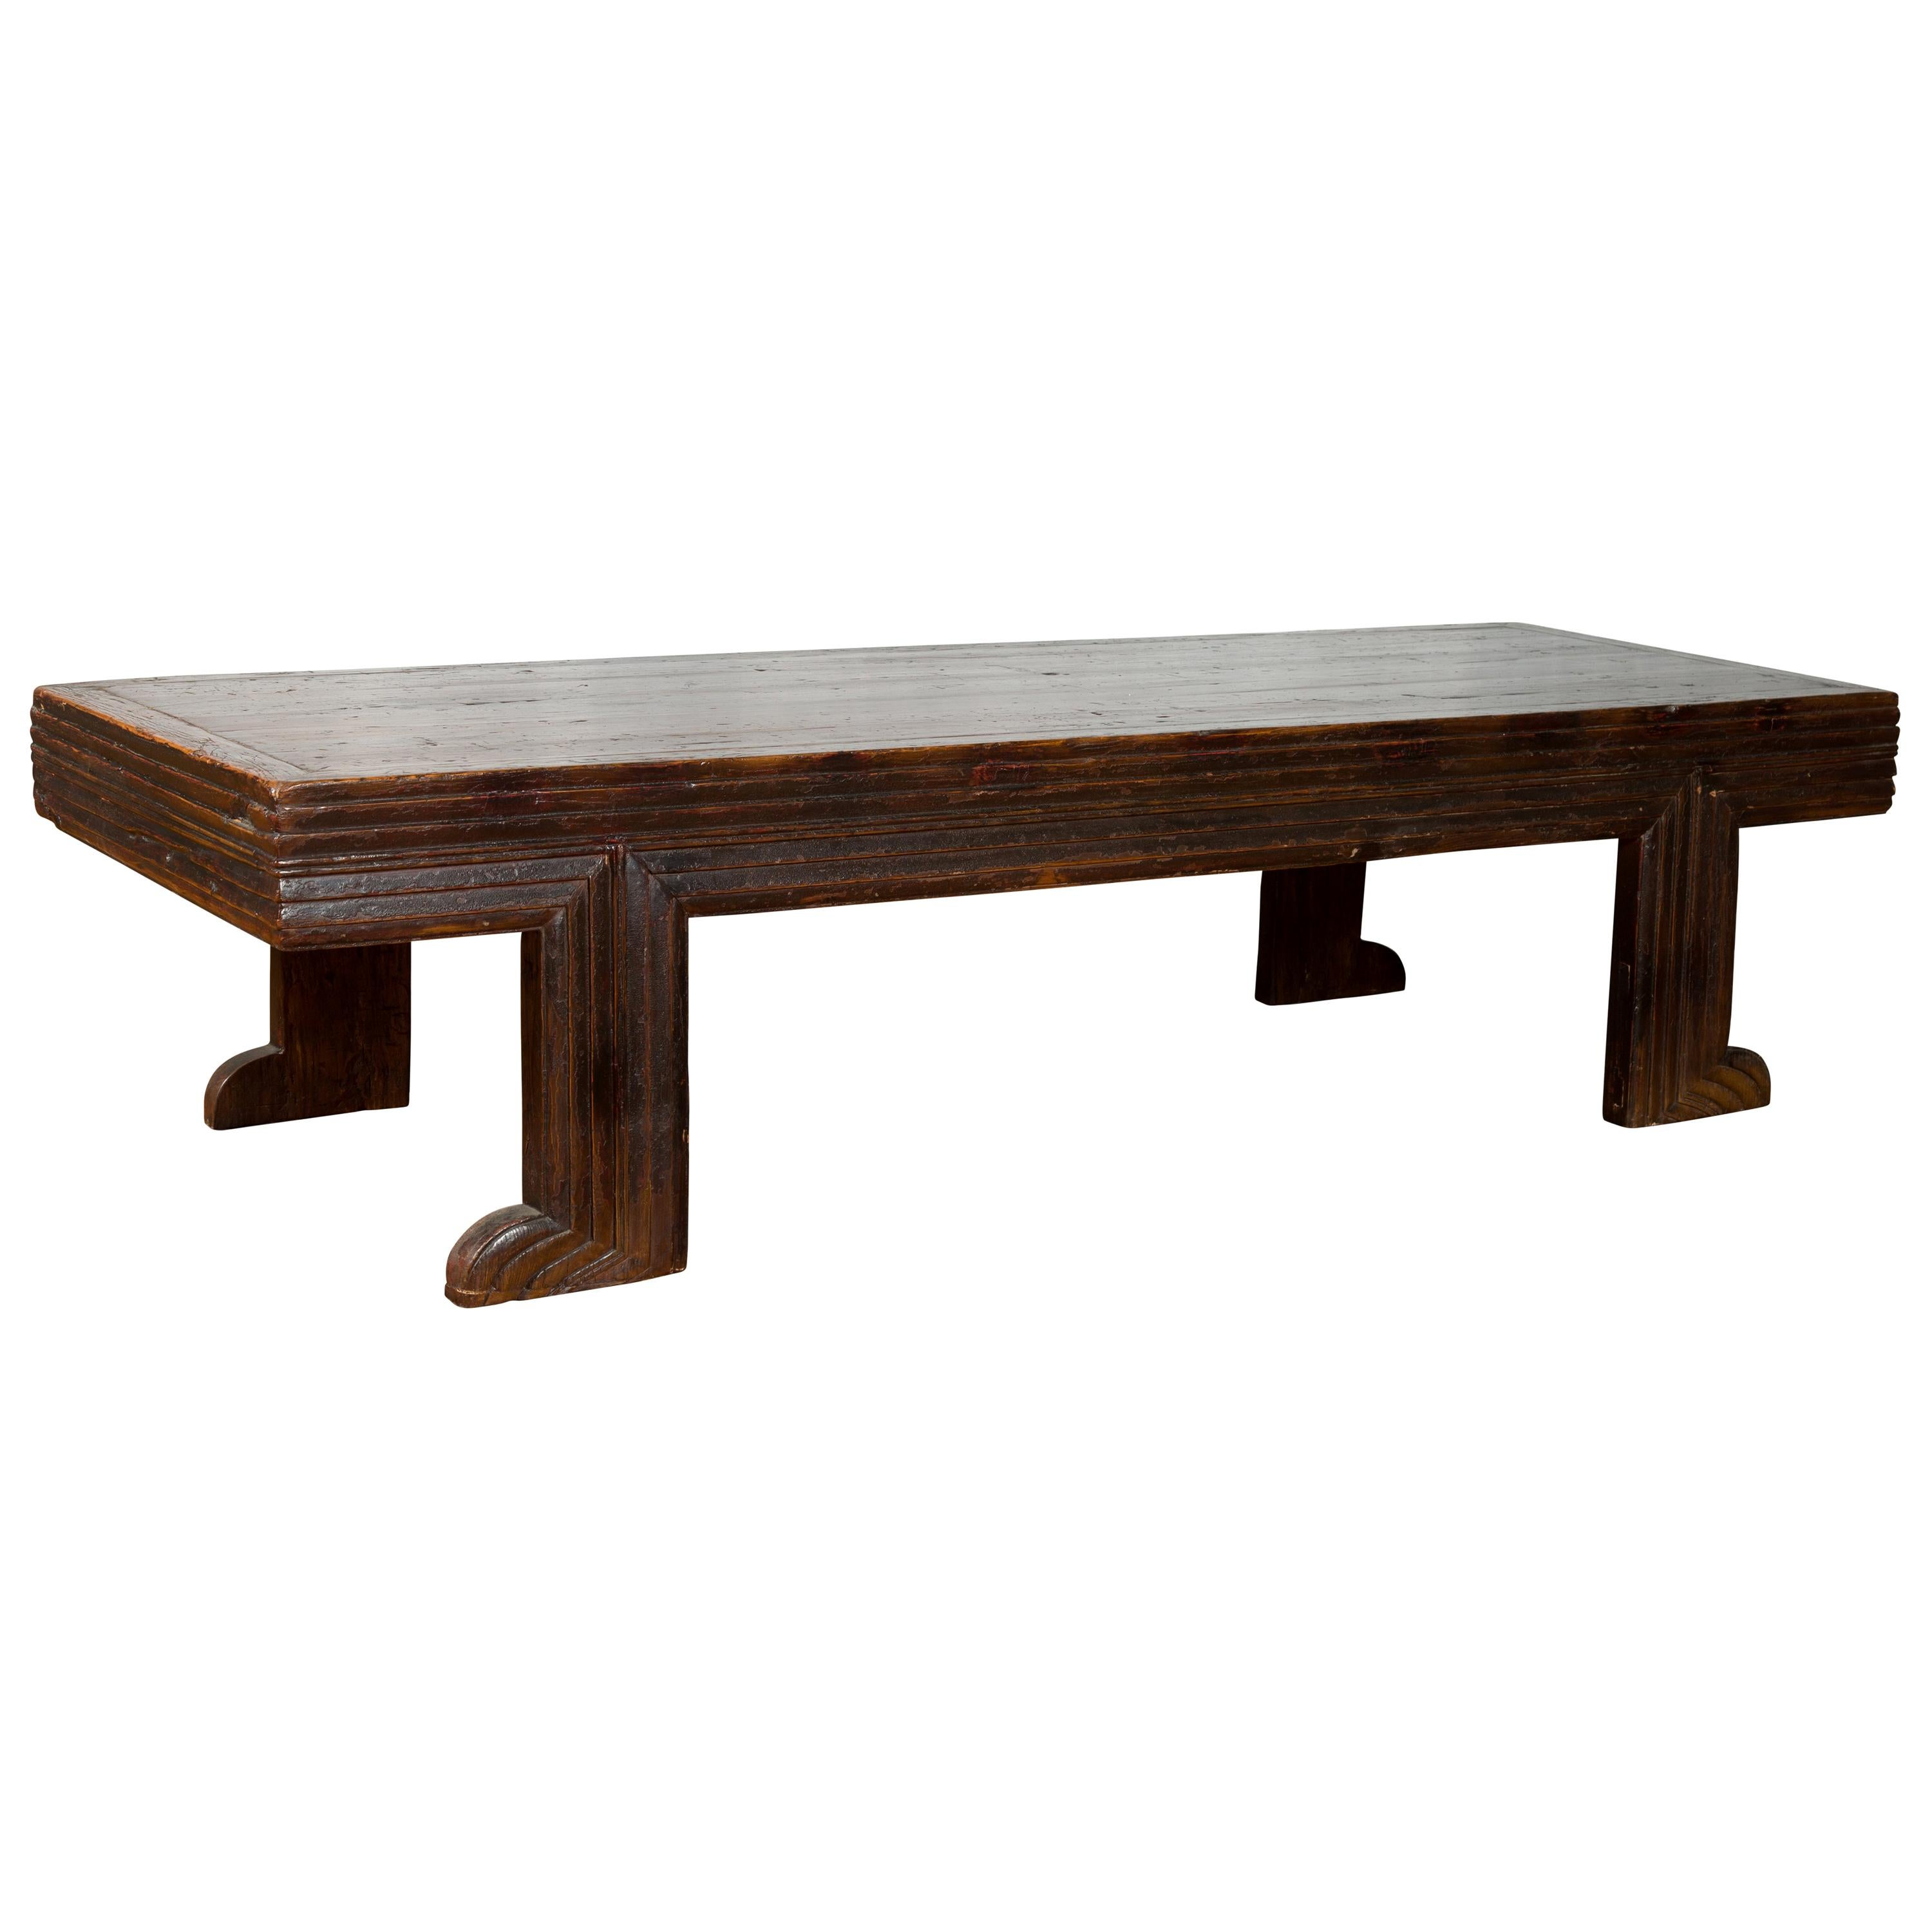 Chinese Qing Dynasty 19th Century Elm Coffee Table with Unusual Recessed Legs